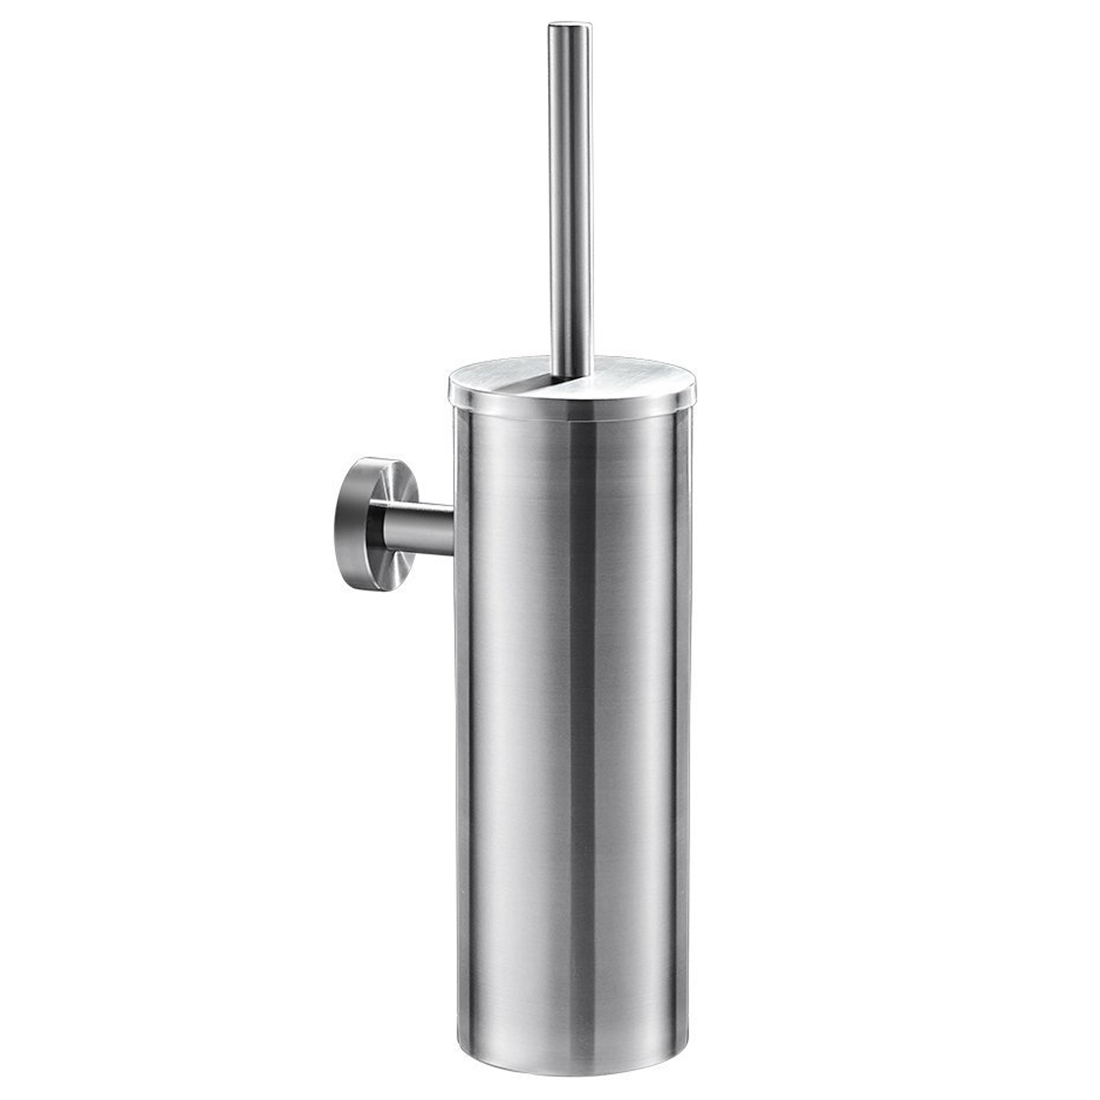 Brand New Toilet Brush for Cleaning Black Color with Stainless Steel Wall Mounted Brush Holder Chromed Finish brand new toilet brush for cleaning black color with stainless steel wall mounted brush holder chromed finish